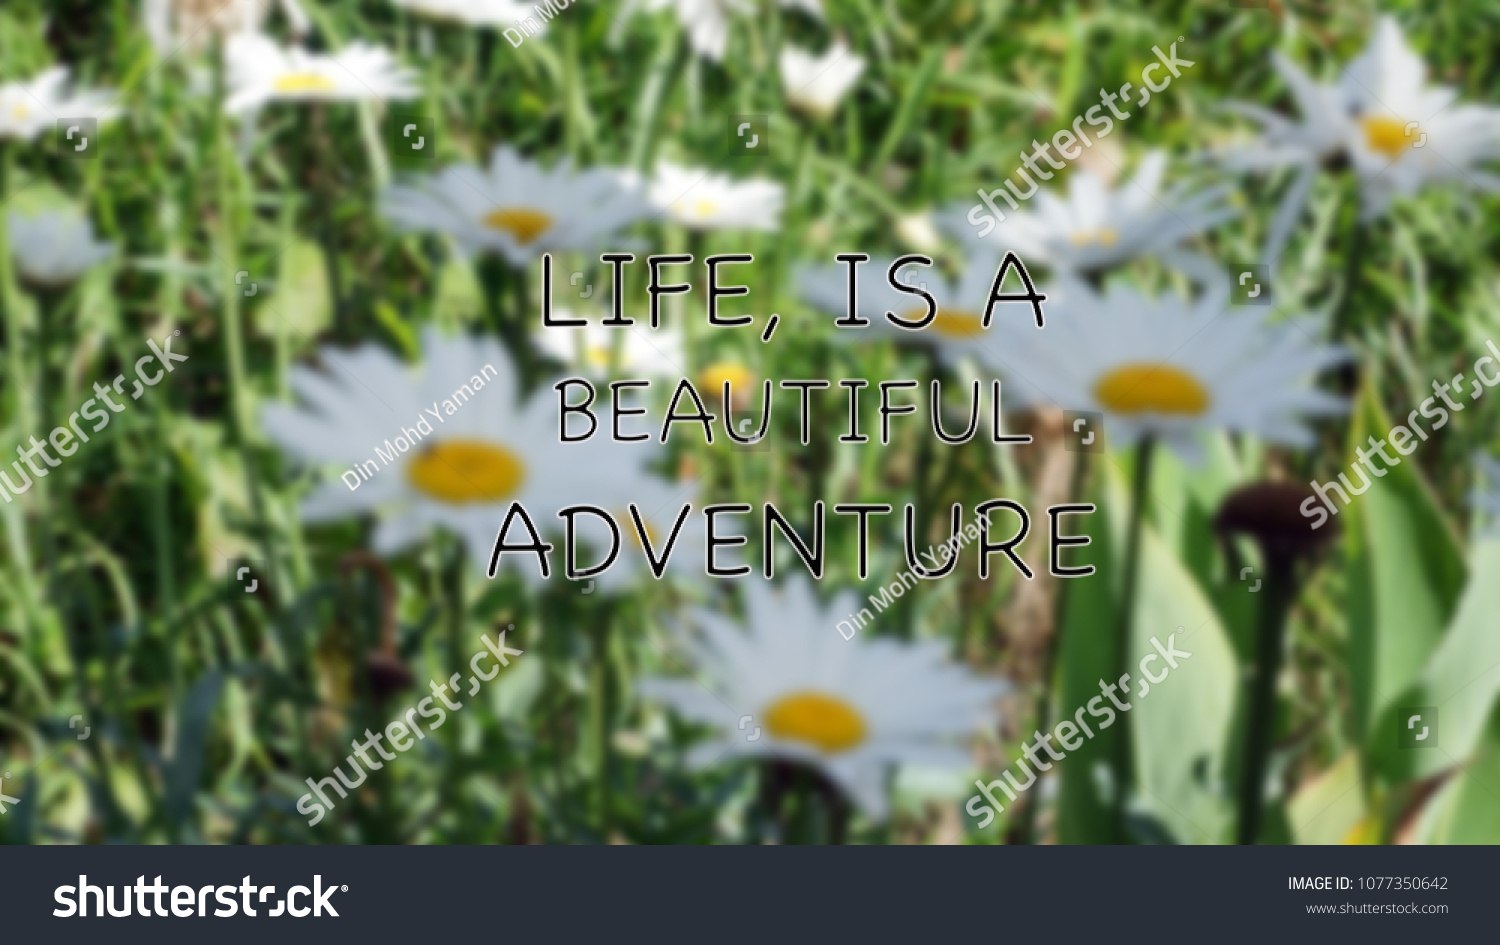 Life quotes life beautiful adventure on stock photo edit now life quotes life is a beautiful adventure on blurry daisy flowers izmirmasajfo